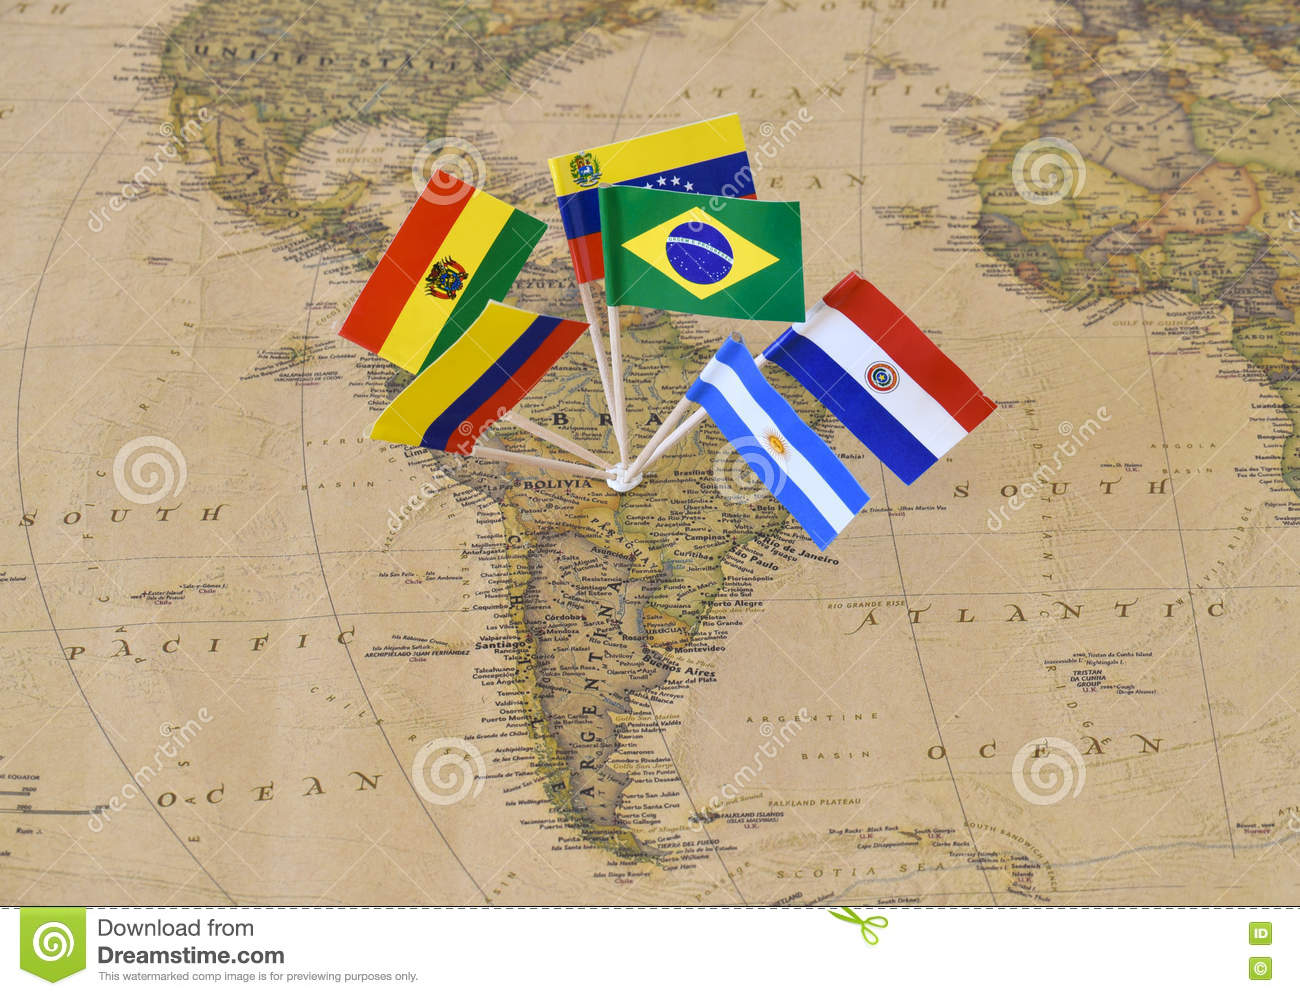 South America Continent With Flag Pins Of Sovereign States On Map - Argentina map continent